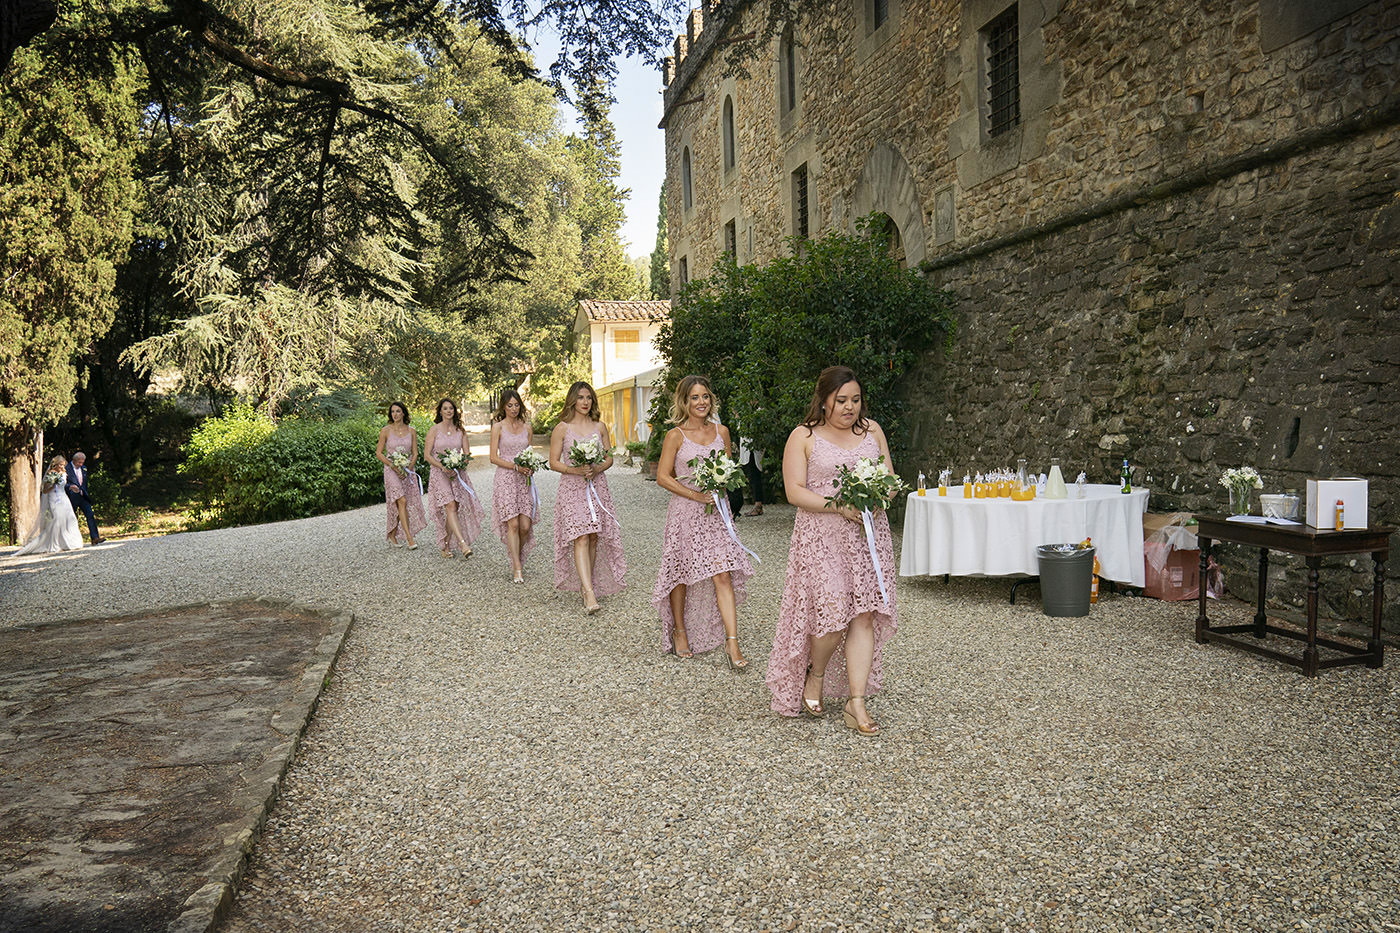 Duccio Argentini: Tuscan Wedding Photo Shoots At Palagio Castle. Bridesmades walking toward the ceremony